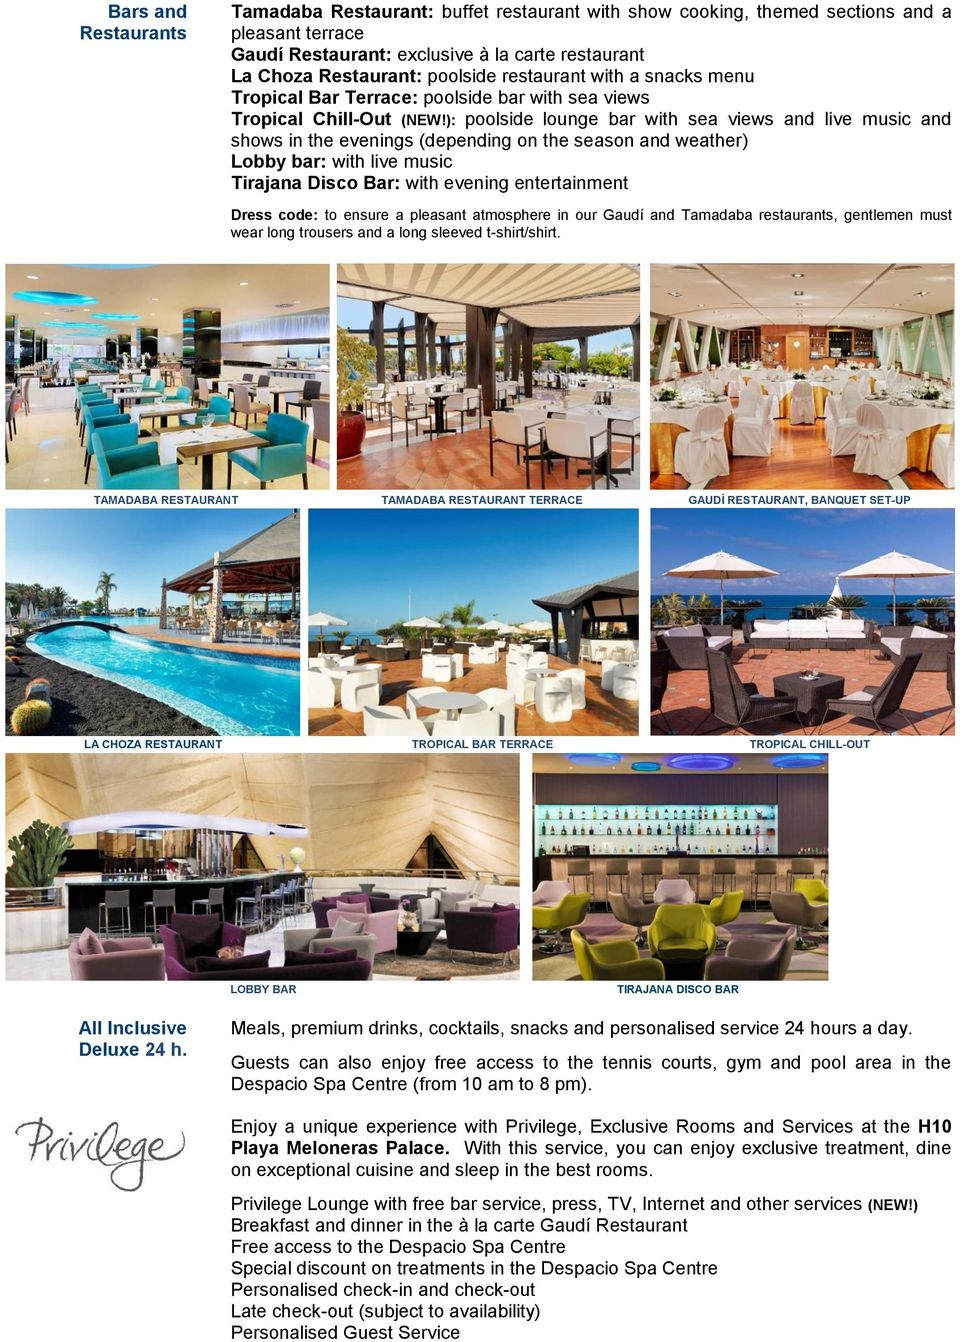 ): poolside lounge bar with sea views and live music and shows in the evenings (depending on the season and weather) Lobby bar: with live music Tirajana Disco Bar: with evening entertainment Dress